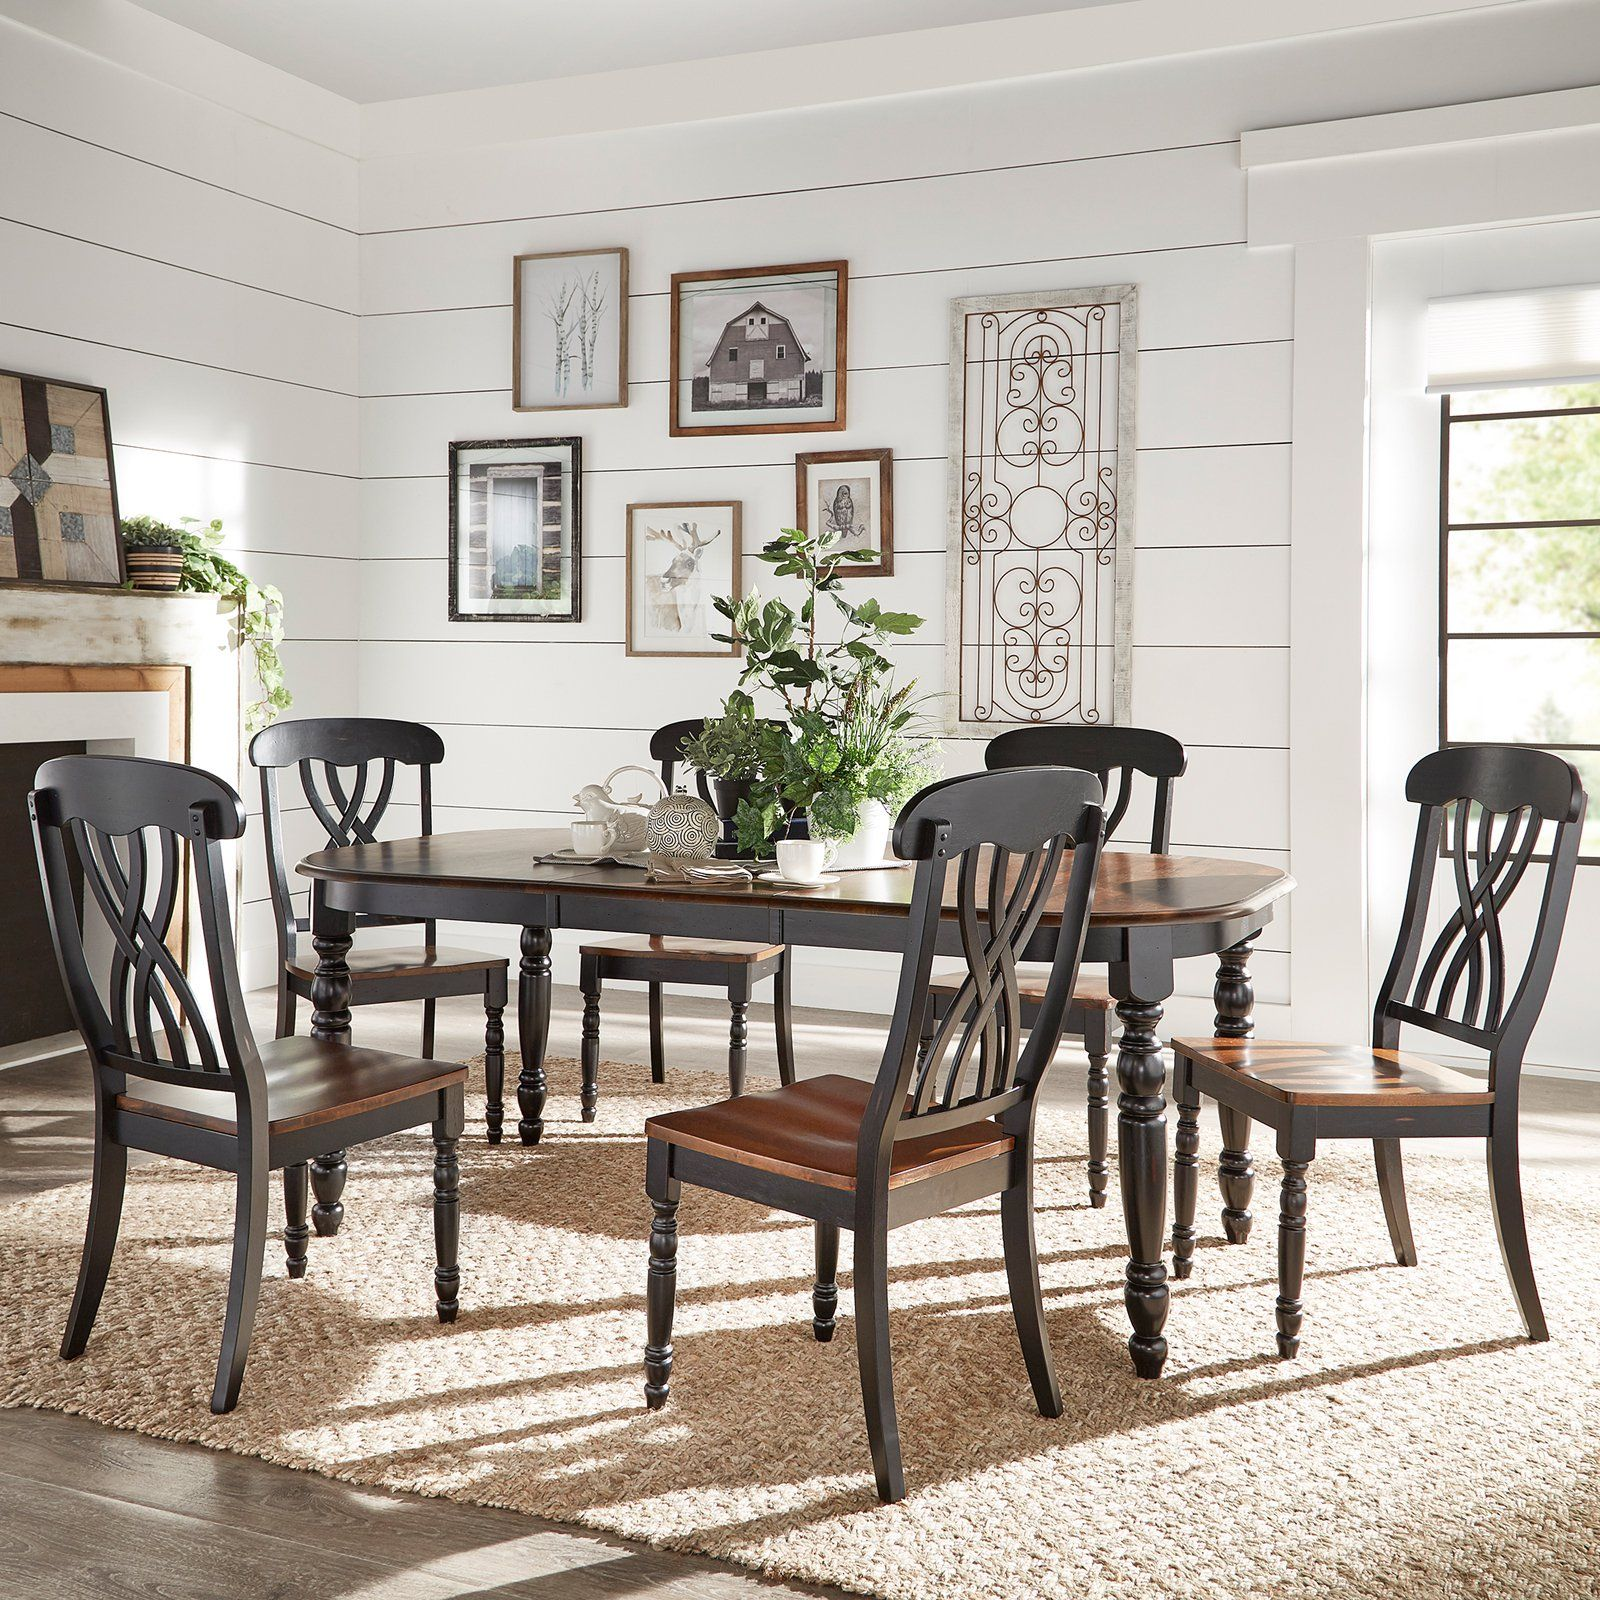 Weston Home Two Tone 7 Piece Dining Set Dining Furniture Sets